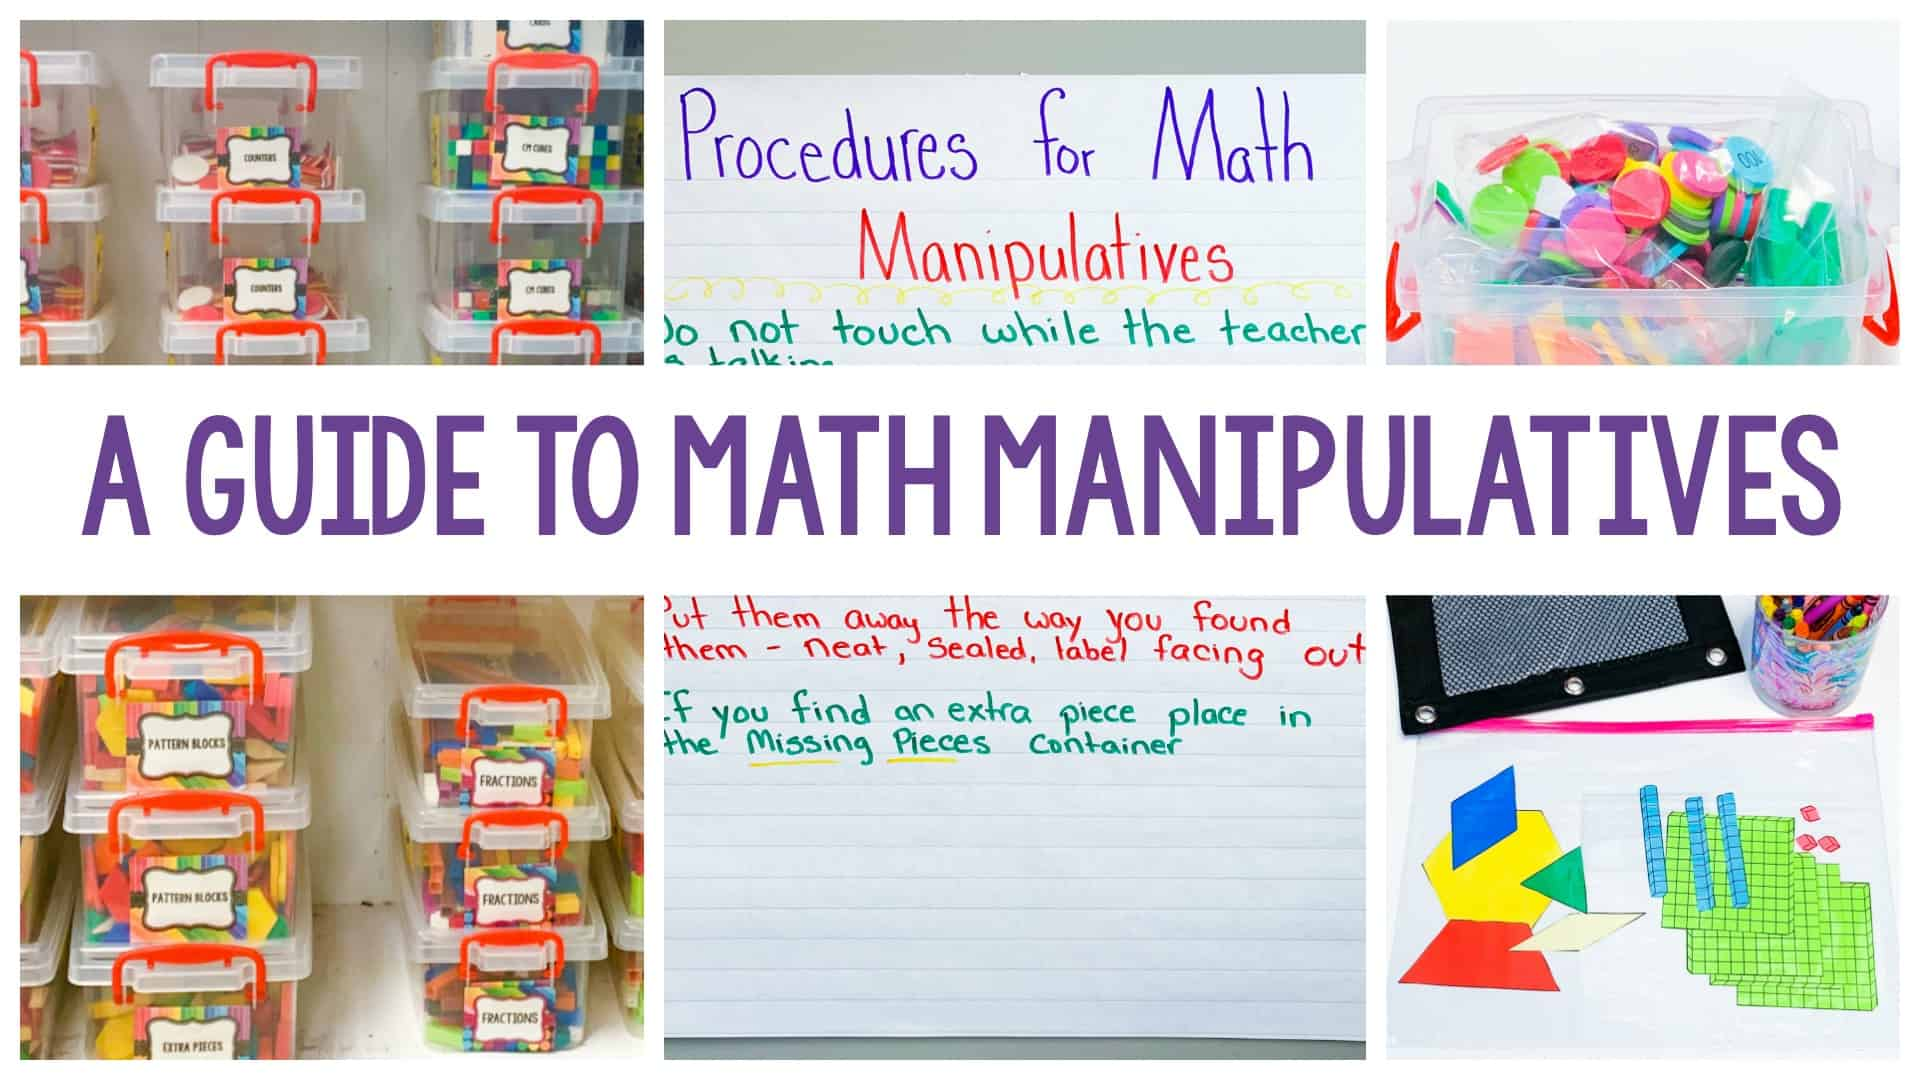 A guide to math manipulatives featured image featuring colorful objects to help teach math